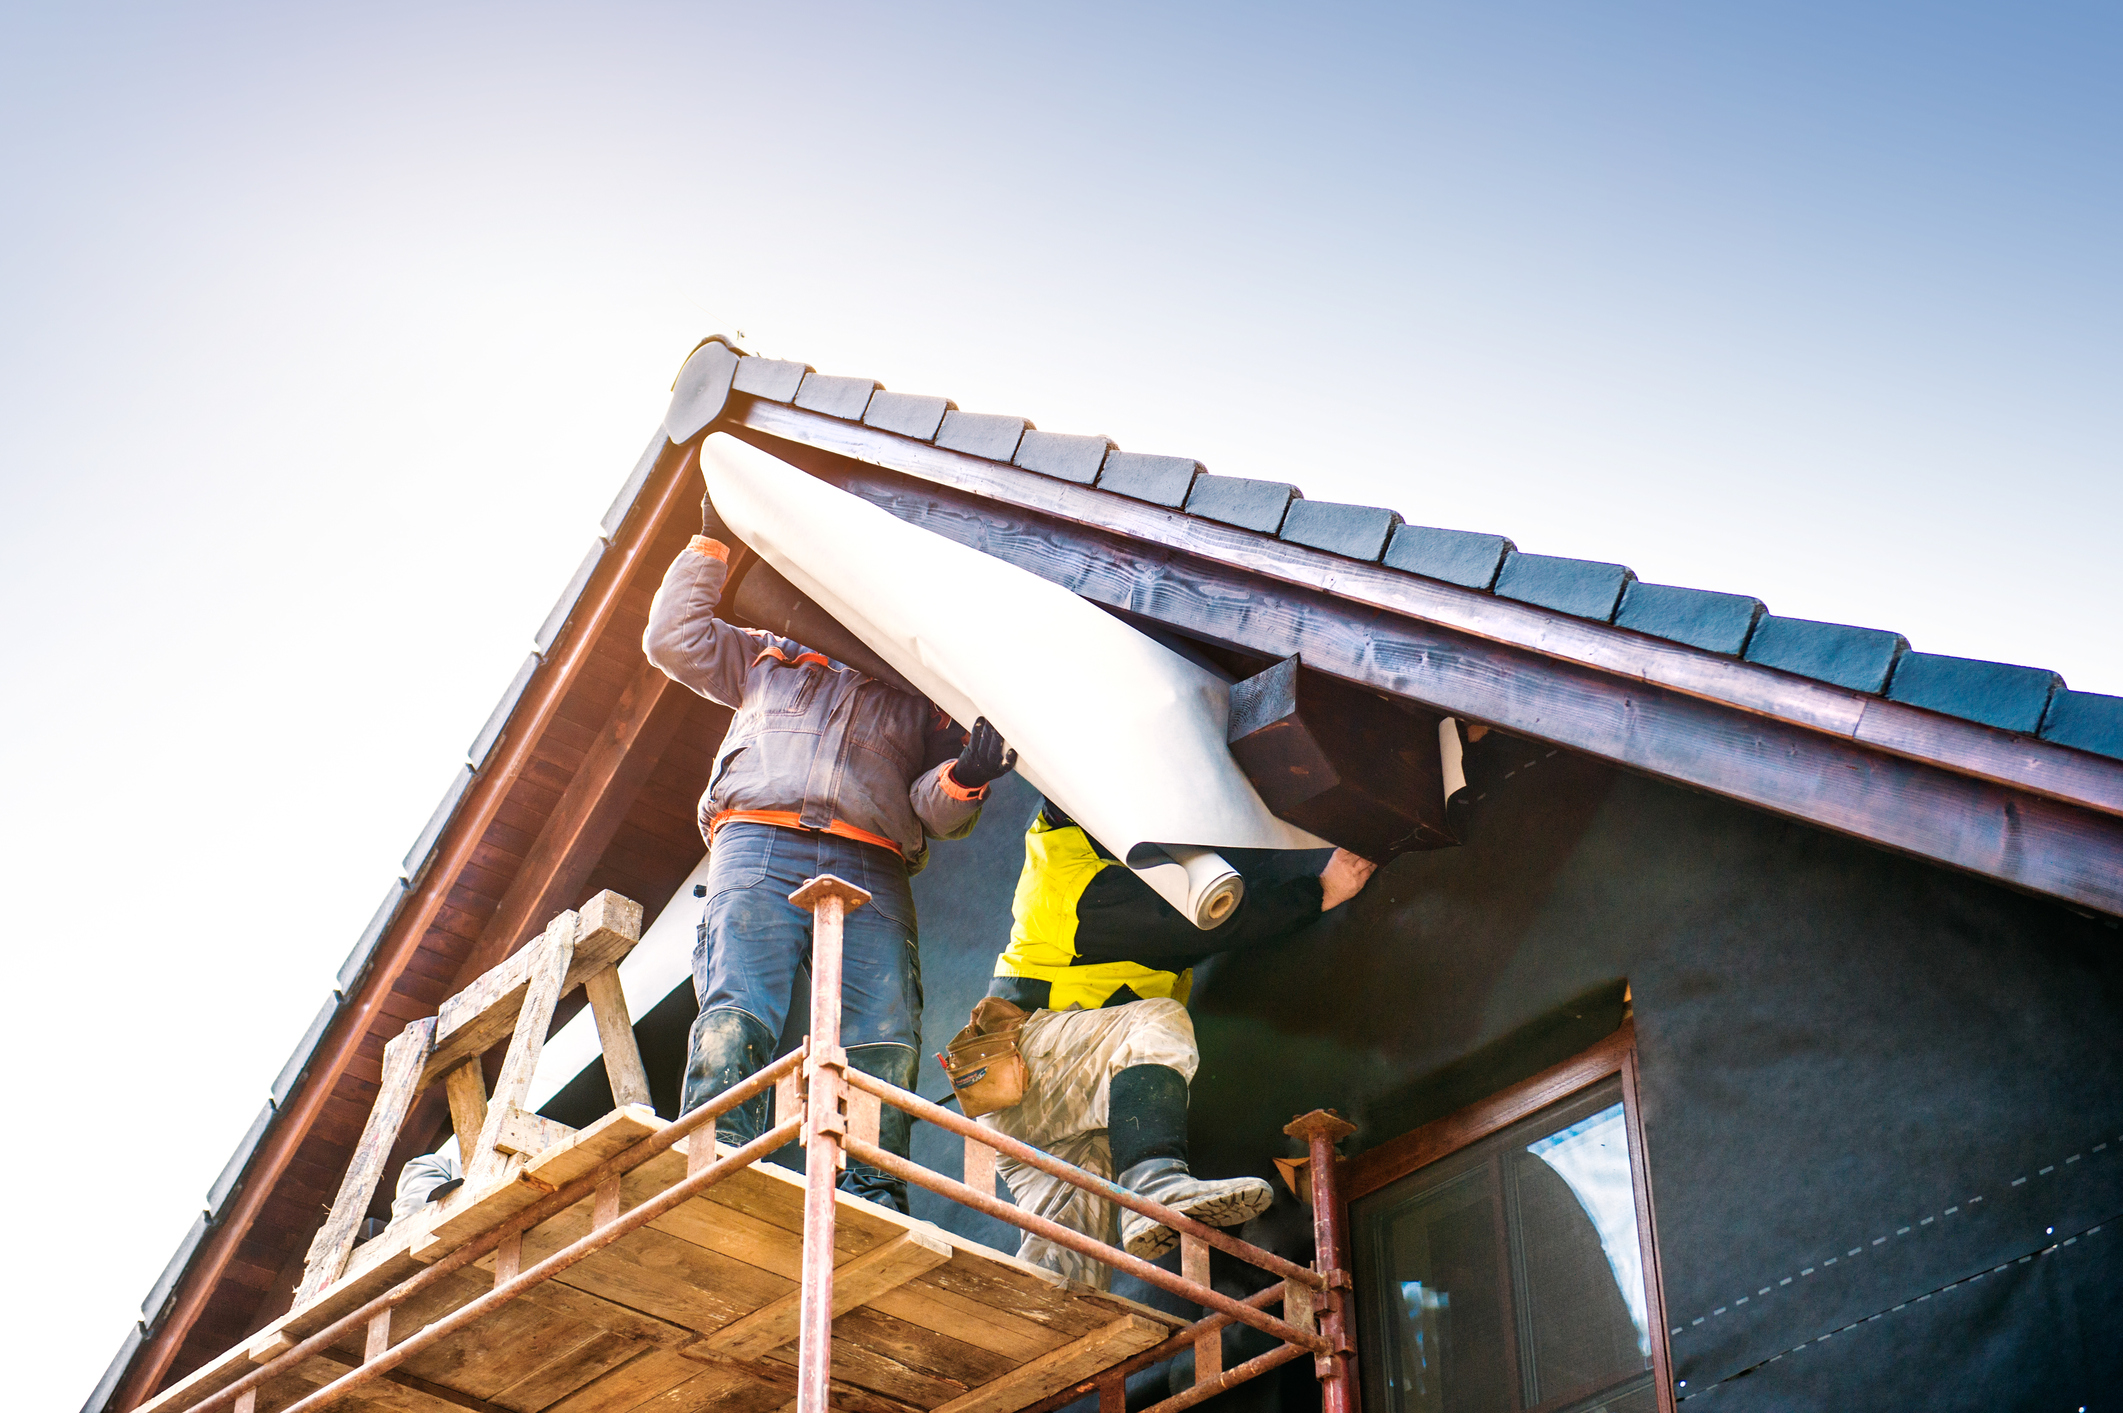 Step Four: Work    Your project will be completed by our skilled, trained technicians. We work with sustainable materials, use sound construction practices, and treat your home with respect while we are there.